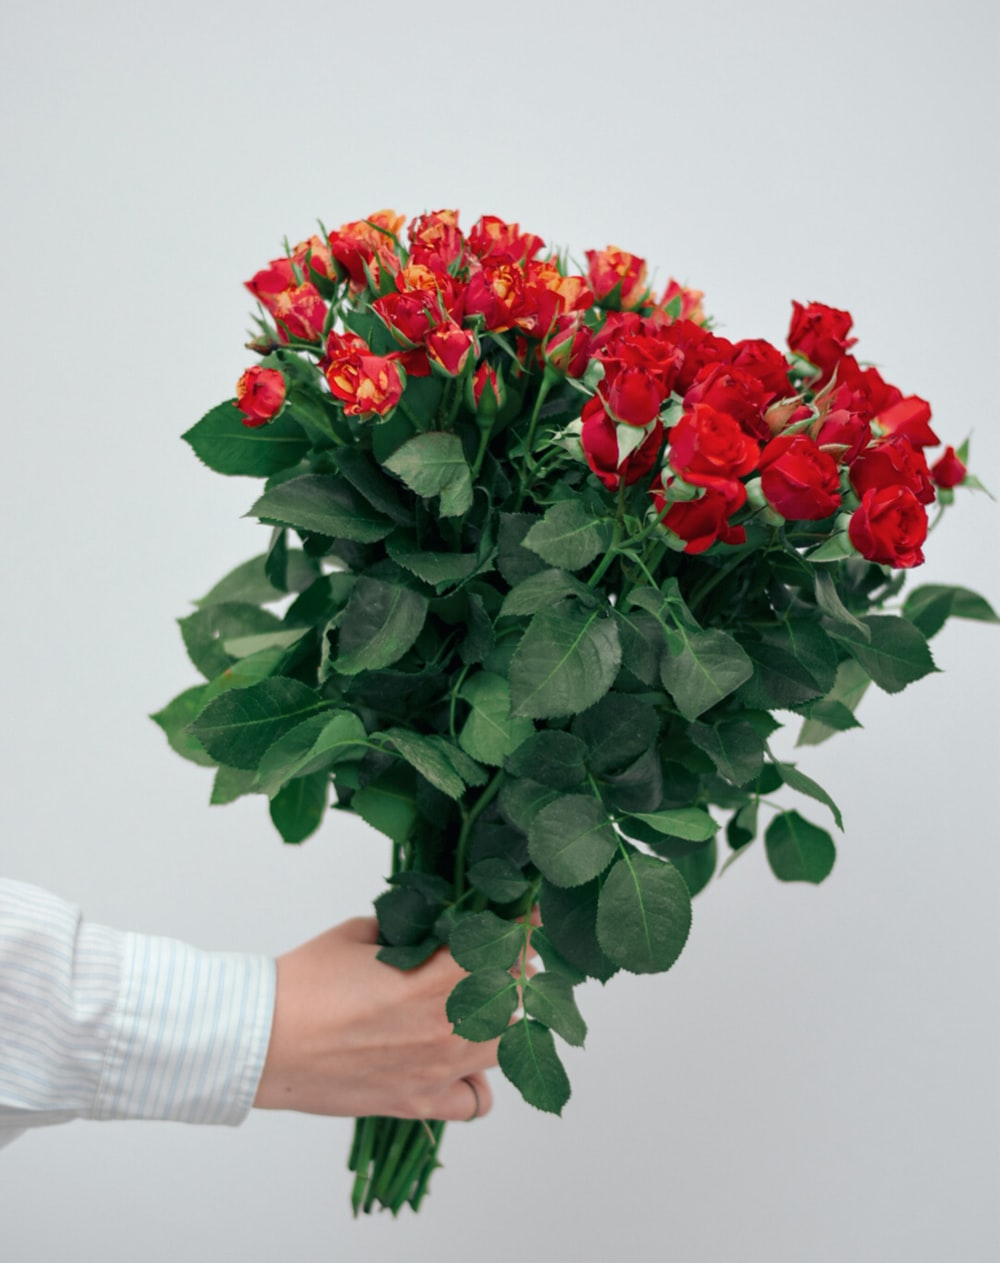 red roses bouquet on persons hand